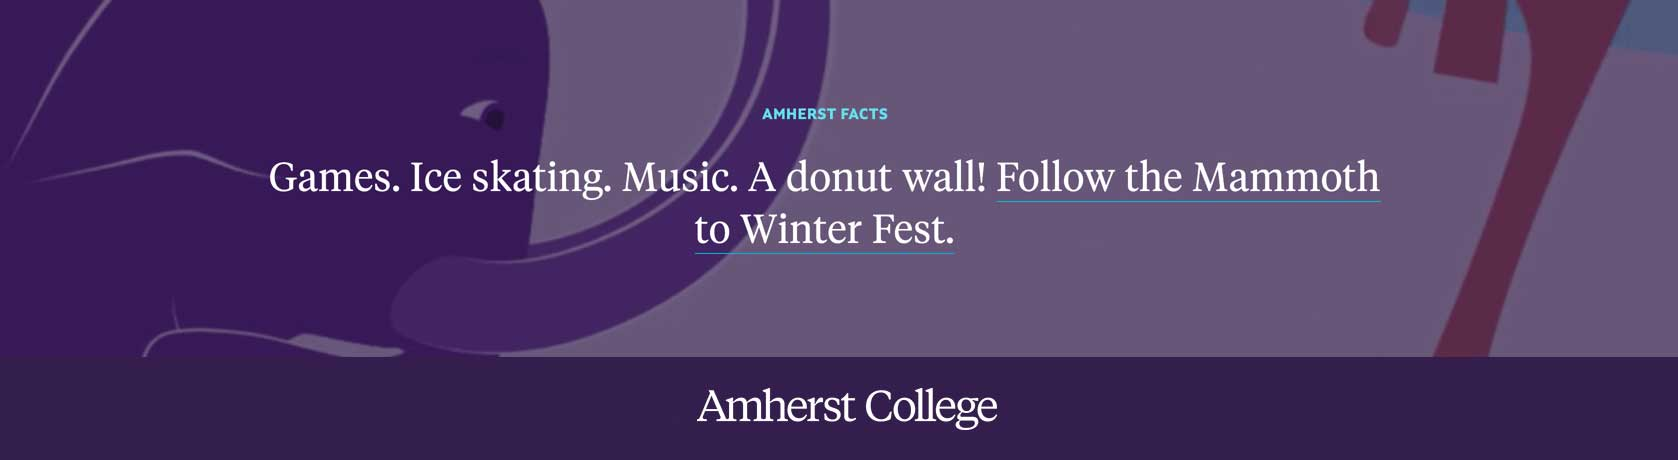 Winter Fest on Sunday, Feb. 16, 2020, 6-8 pm in Coolidge Cage